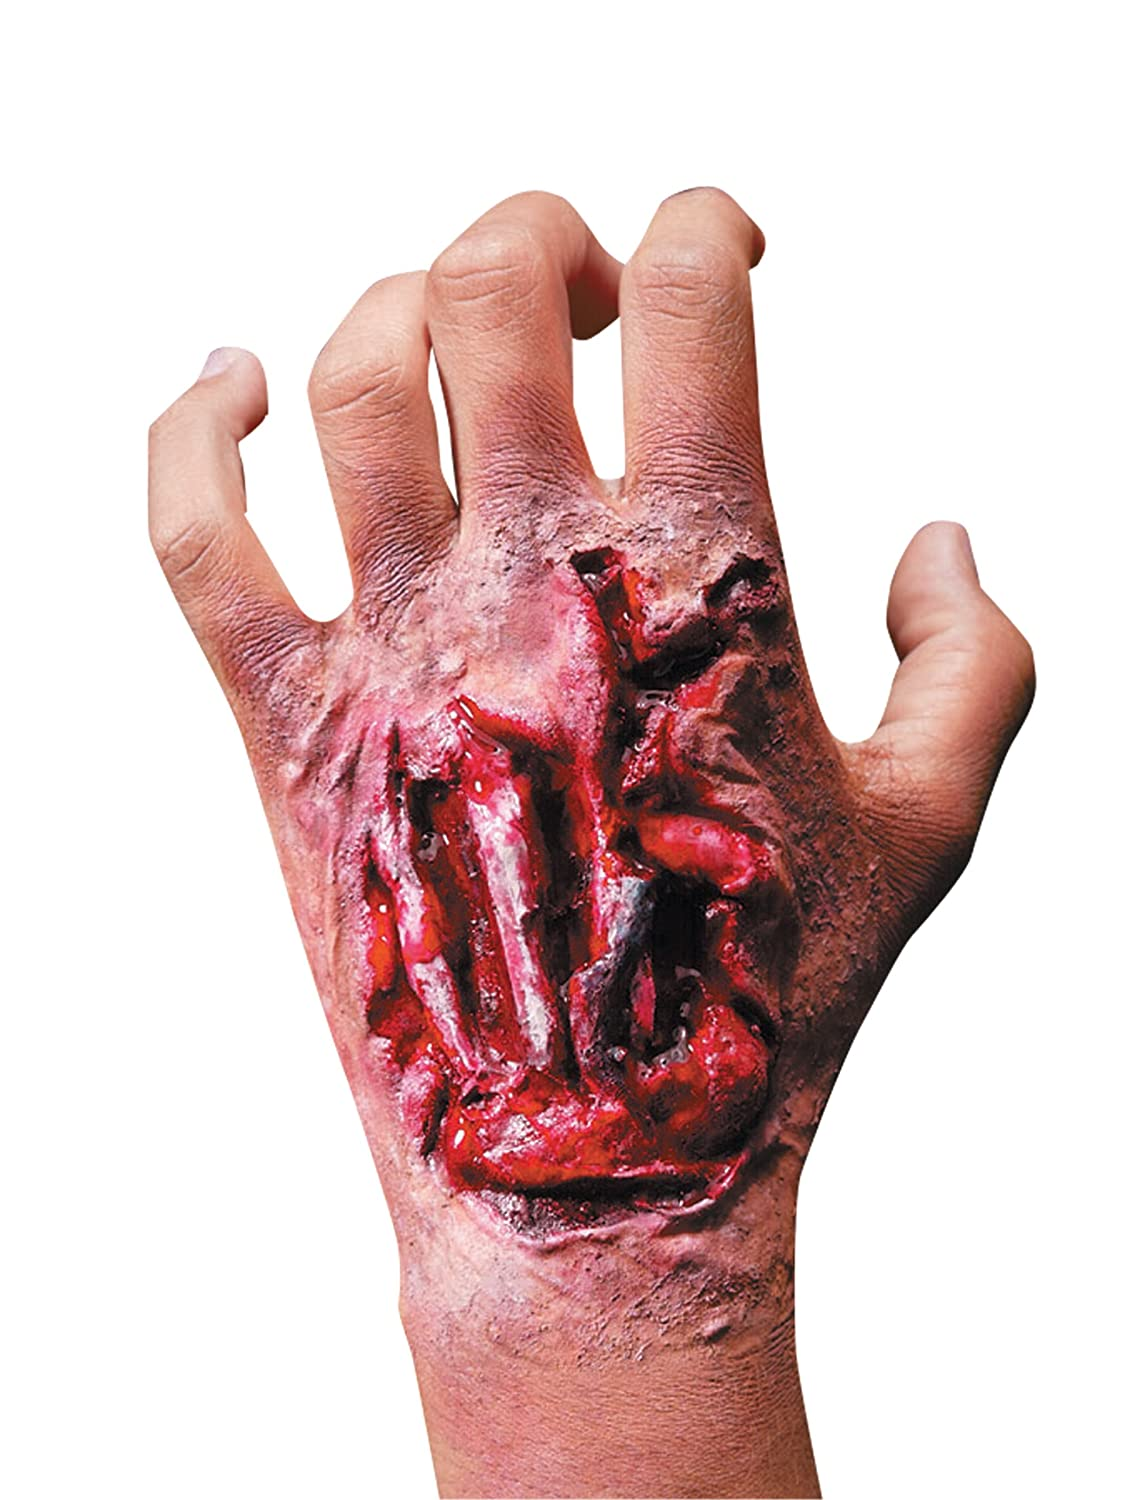 Rubie's Costume Reel F/X Torn Up Hand Wound with Tendons Red One Size Rubies Costumes - Apparel 68729